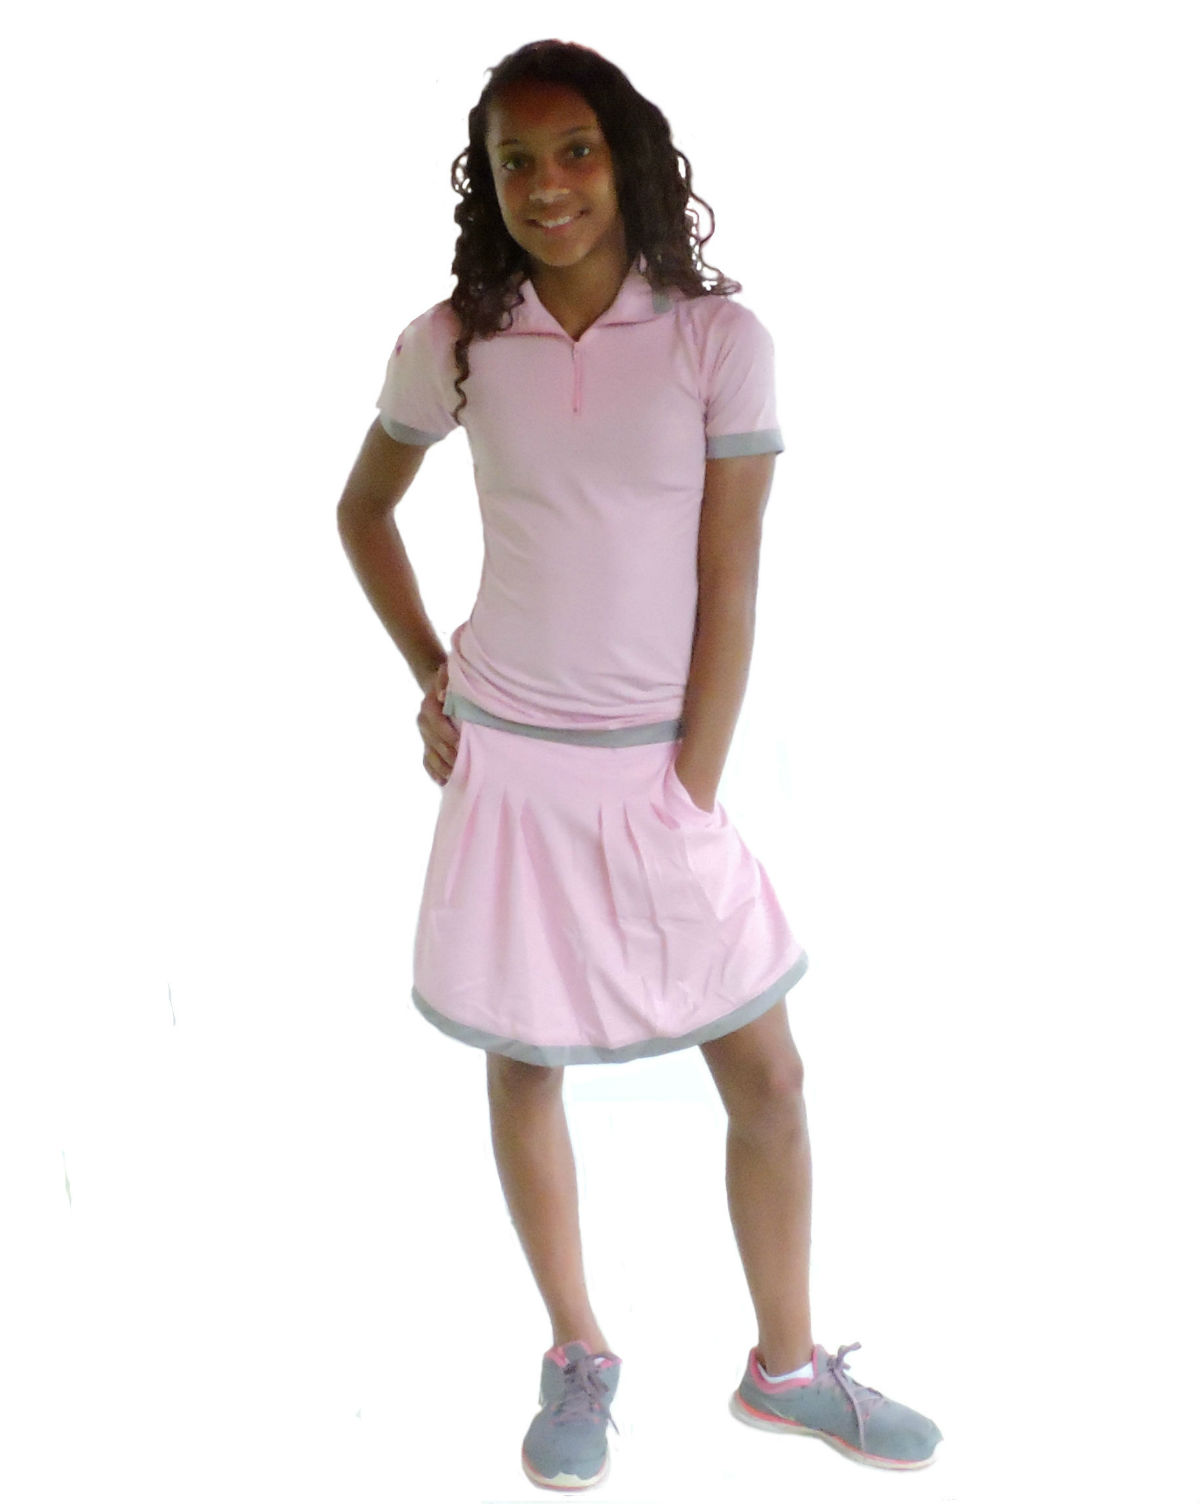 Sephlin - Lady E Dri-Fit Pink Pleated Skort